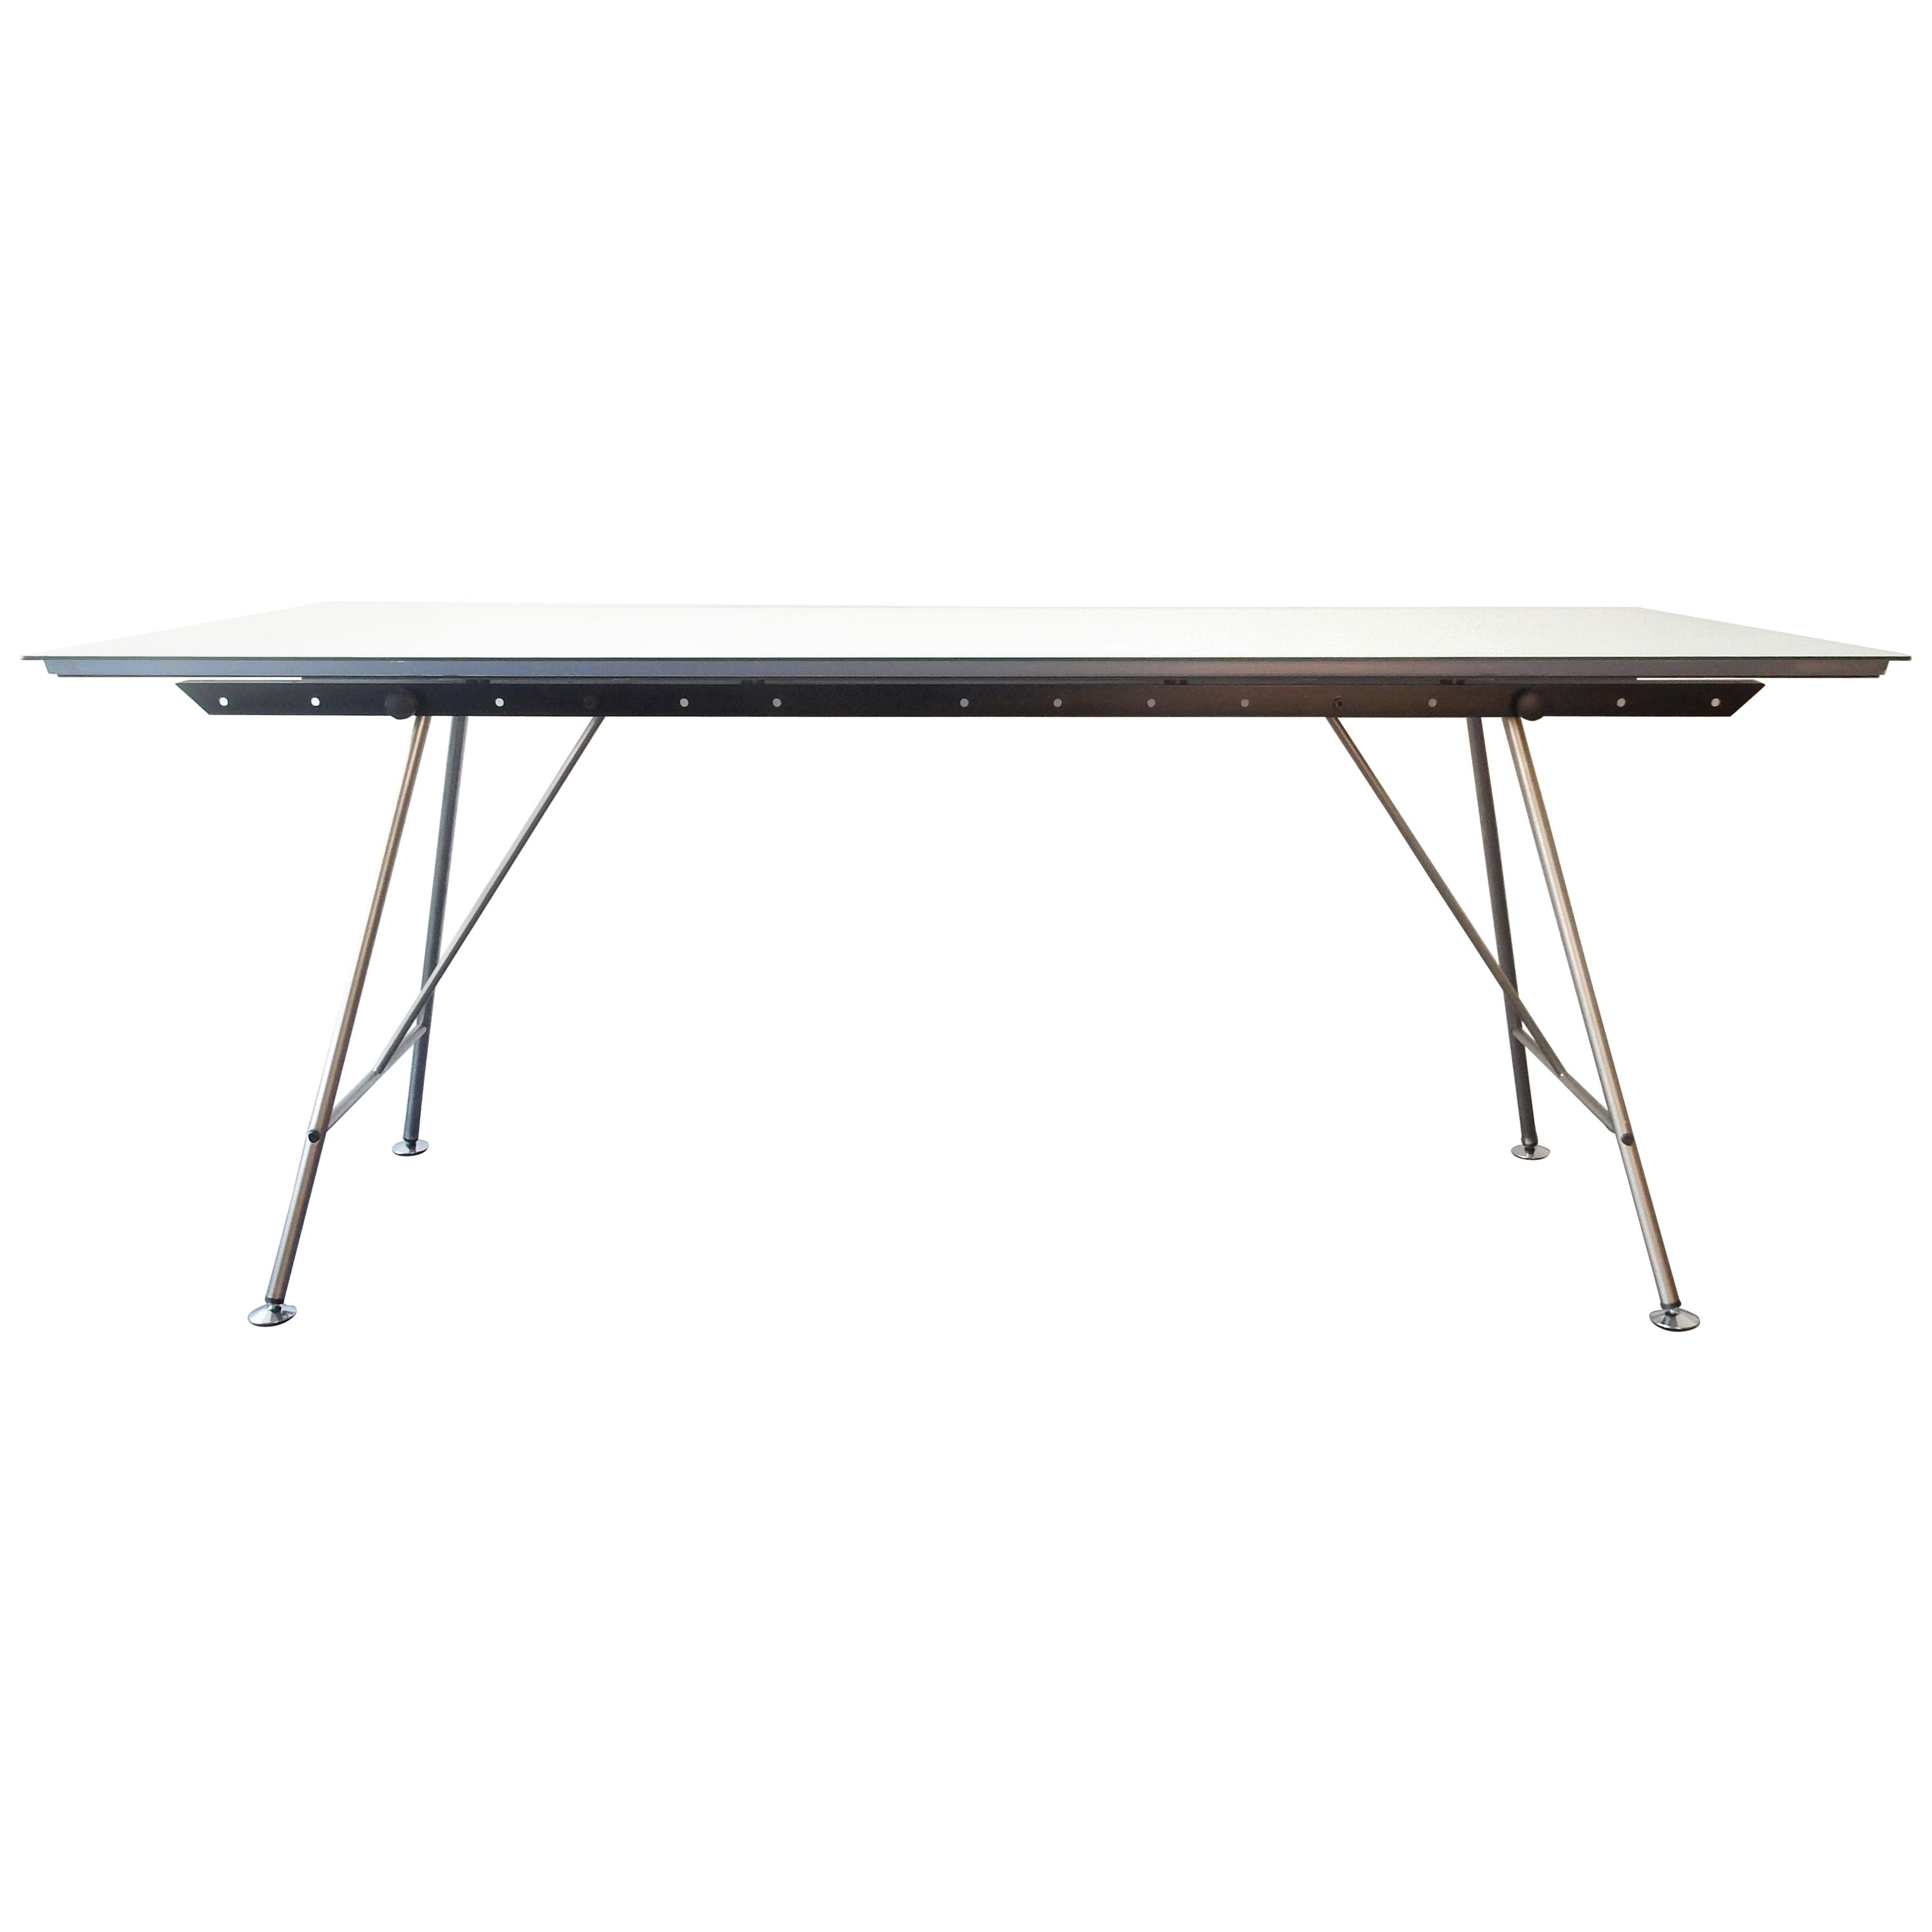 Atelier Alinea Tables 1 For Sale At 1stdibs